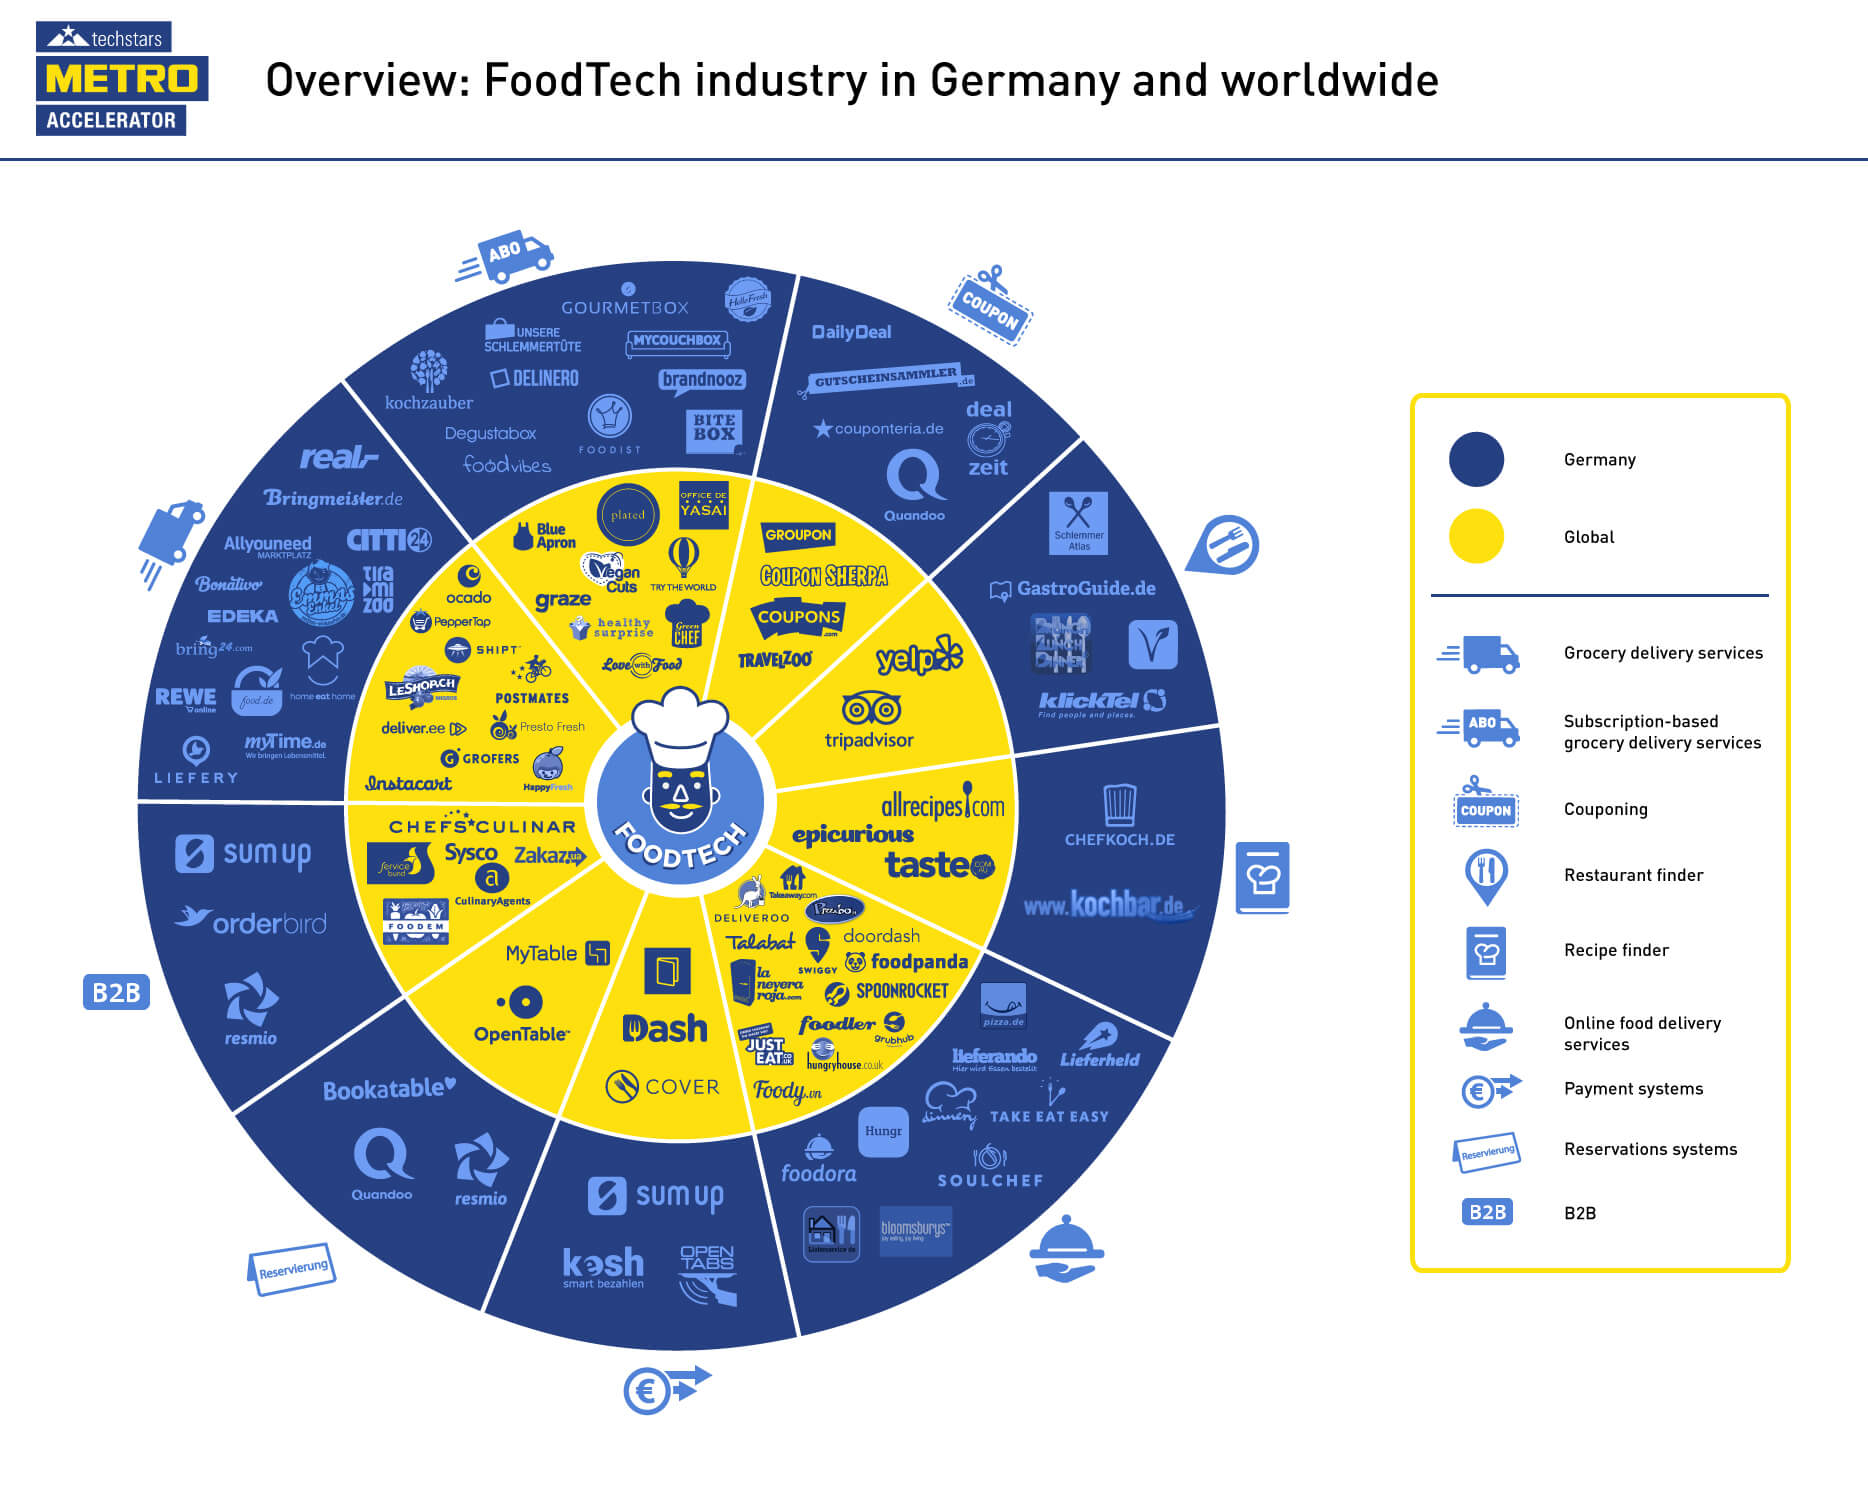 Overview: Food Tech Industry in Germany and Worldwide